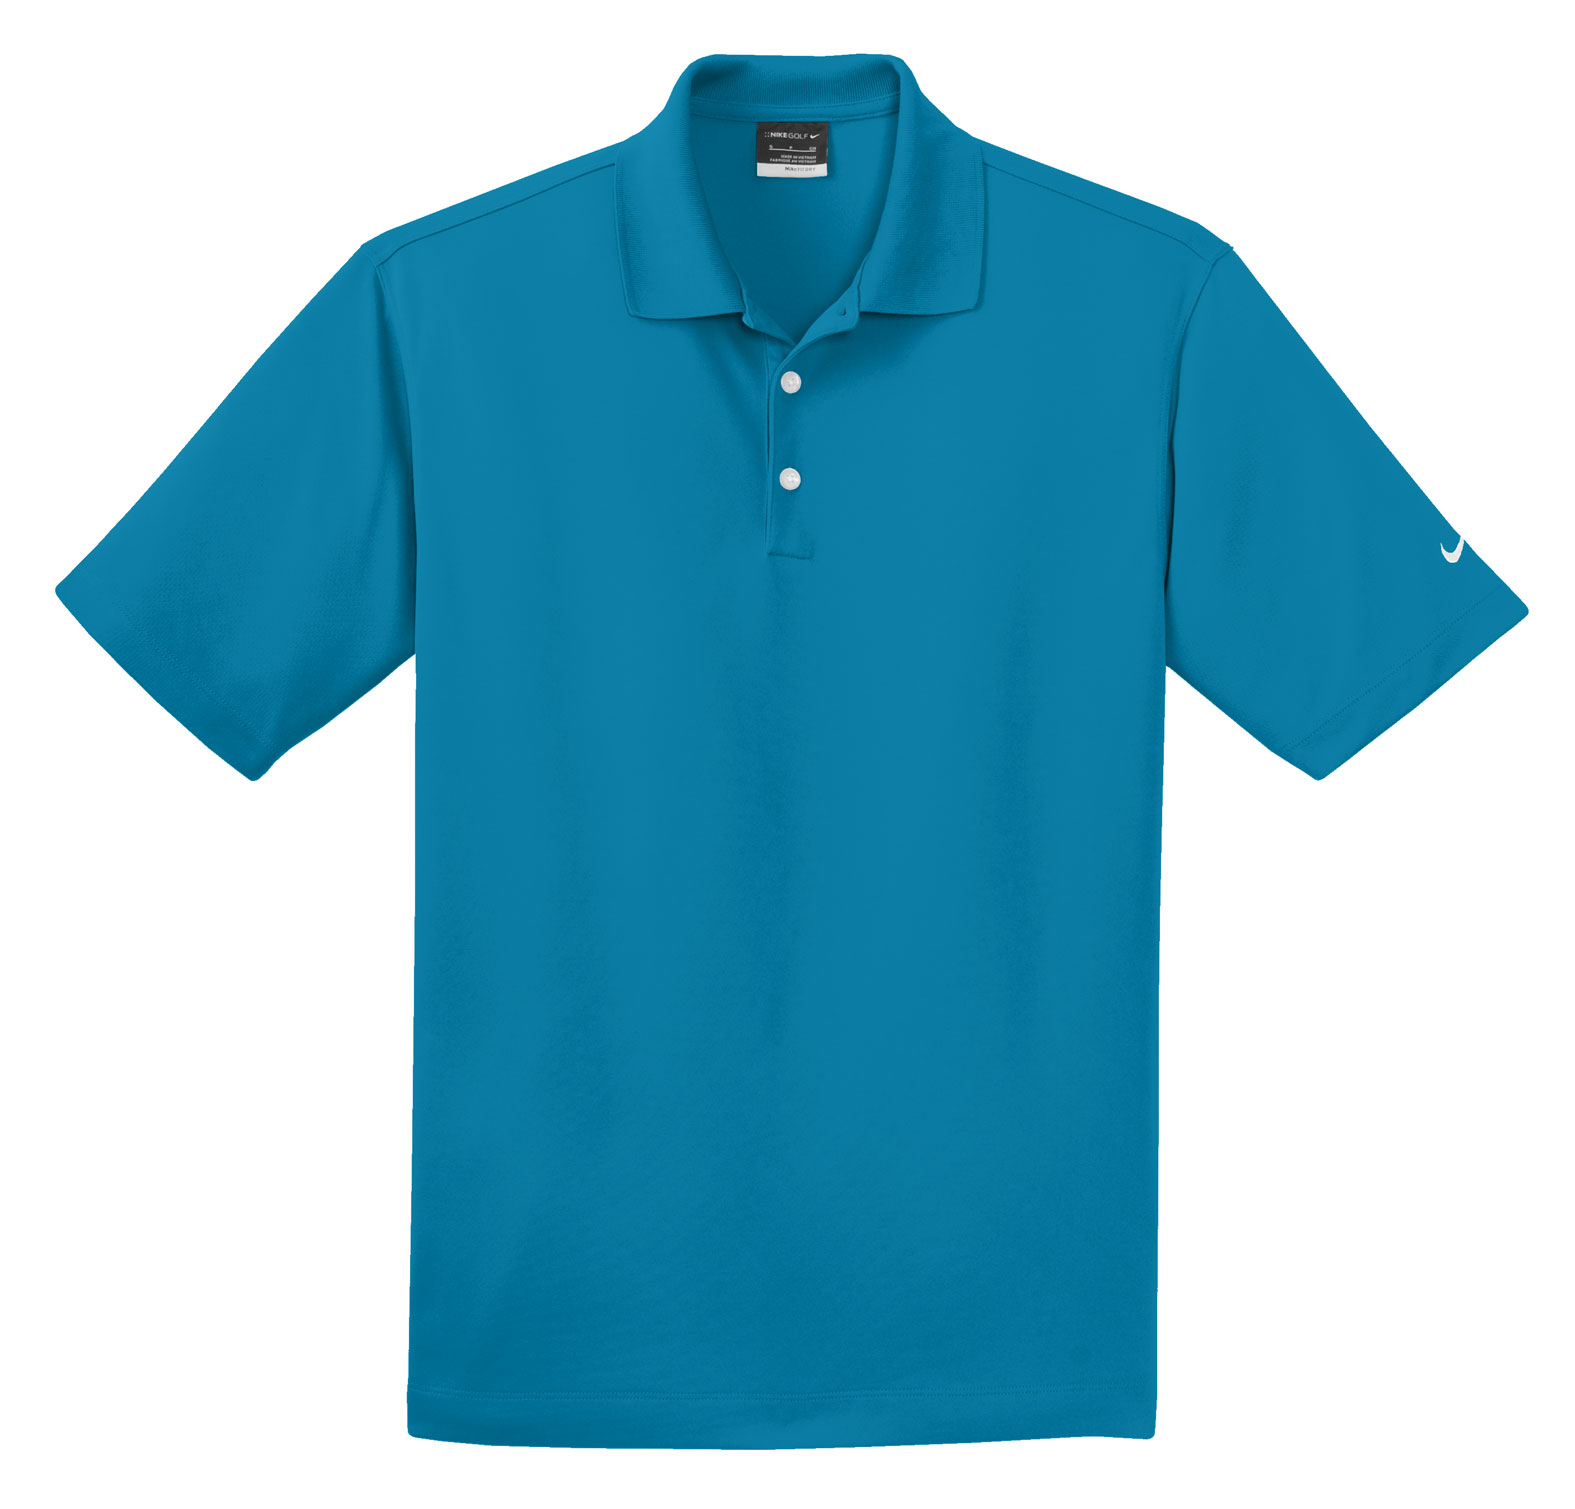 NIKE Golf Mens Dri-FIT Micro Pique Sport Polo Shirt